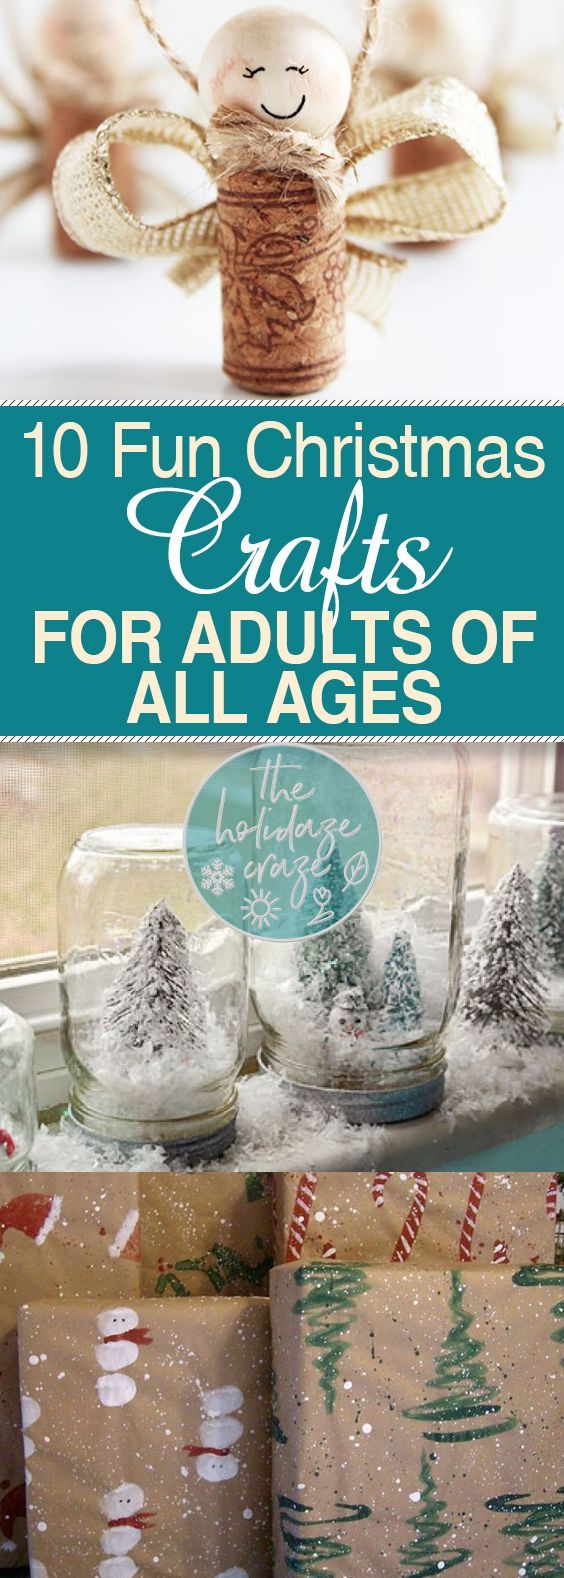 36++ Diy crafts for adults christmas ideas in 2021